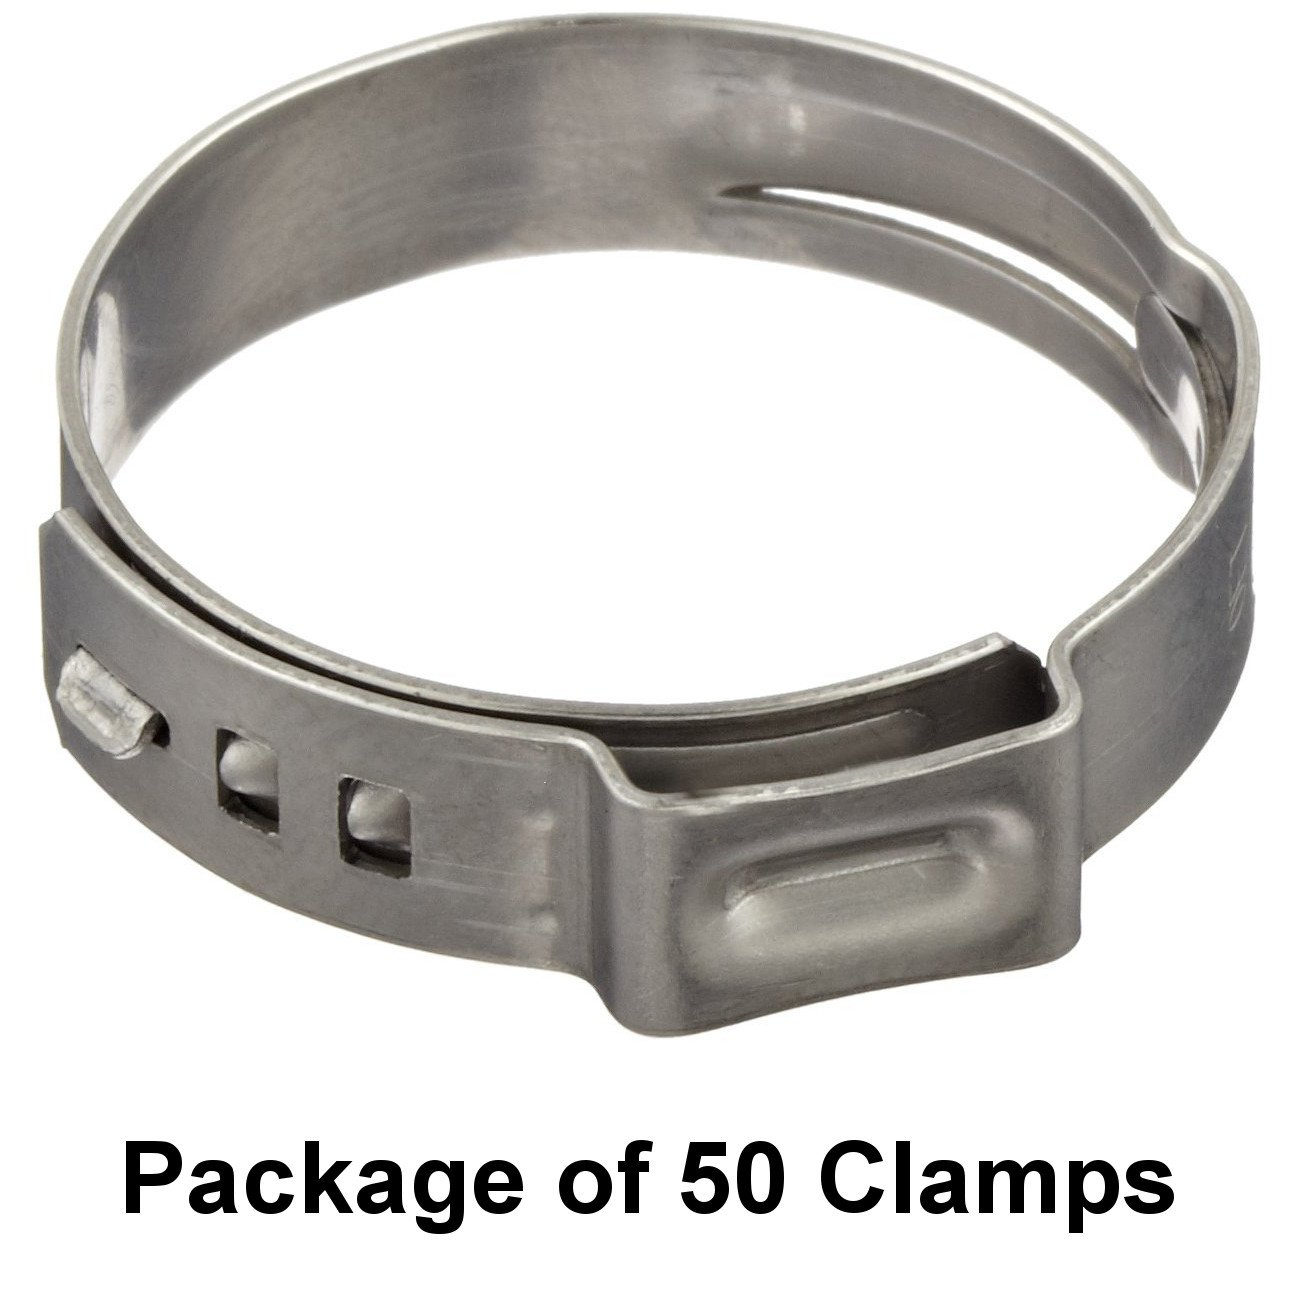 Oetiker 16700003 Stepless Ear Clamp, One Ear 5 mm Band Width, Clamp ID Range 7 mm (Closed) - 8.7 mm (Open) (Pack of 50)